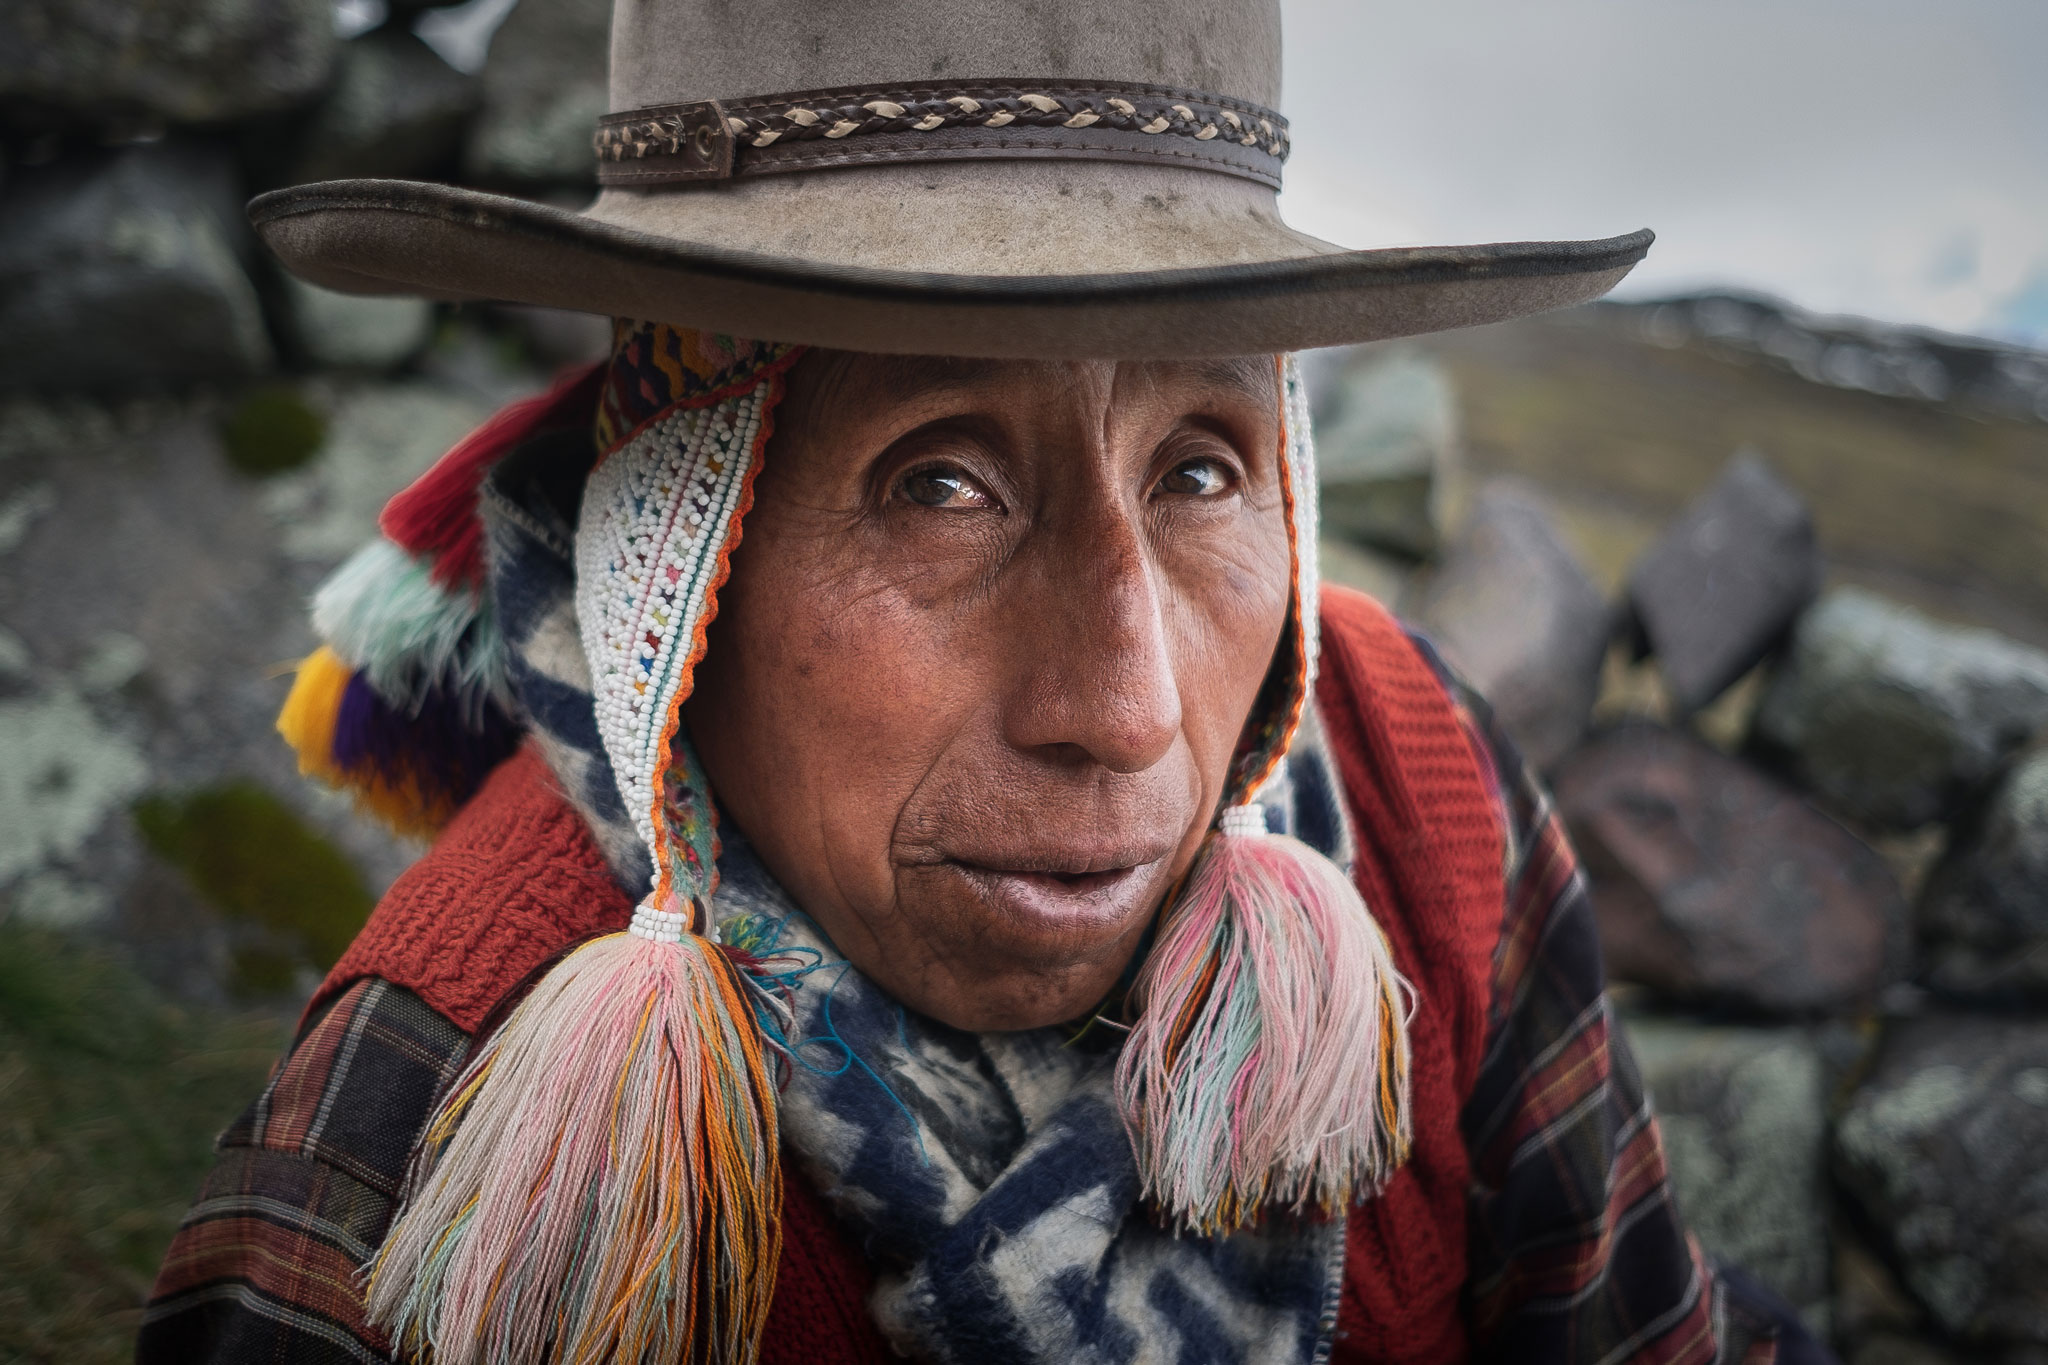 QUECHUA MAN FROM THE AUSANGATE REGION IN PERU